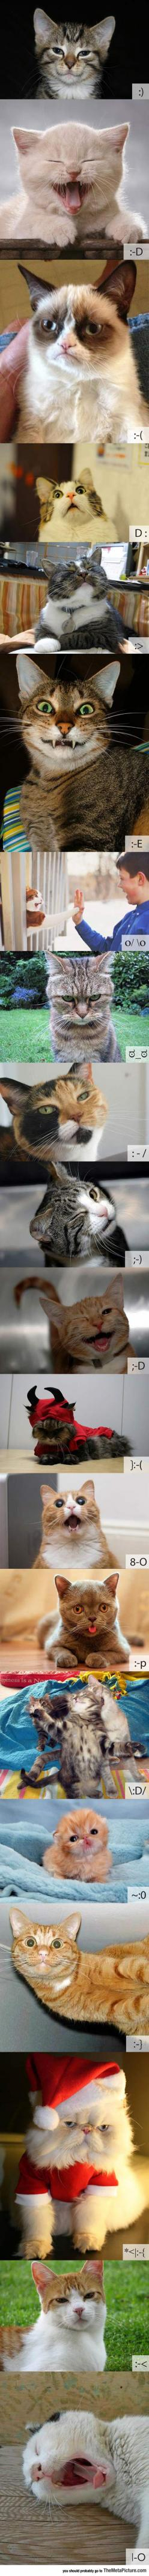 If Cats Were Emoticons